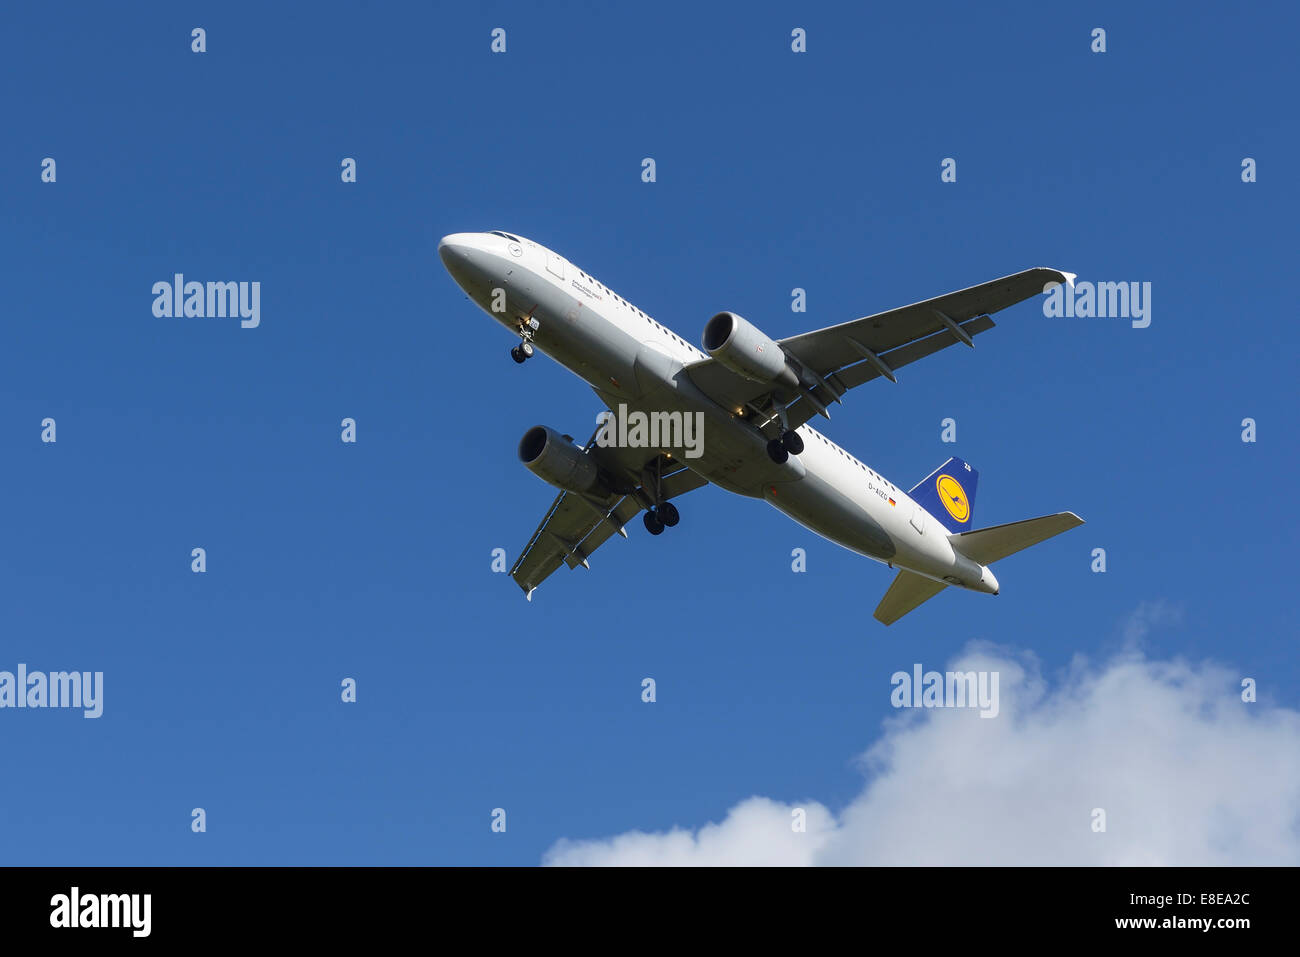 Lufthansa Airbus A320 aircraft on the final approach to Manchester Airport UK - Stock Image